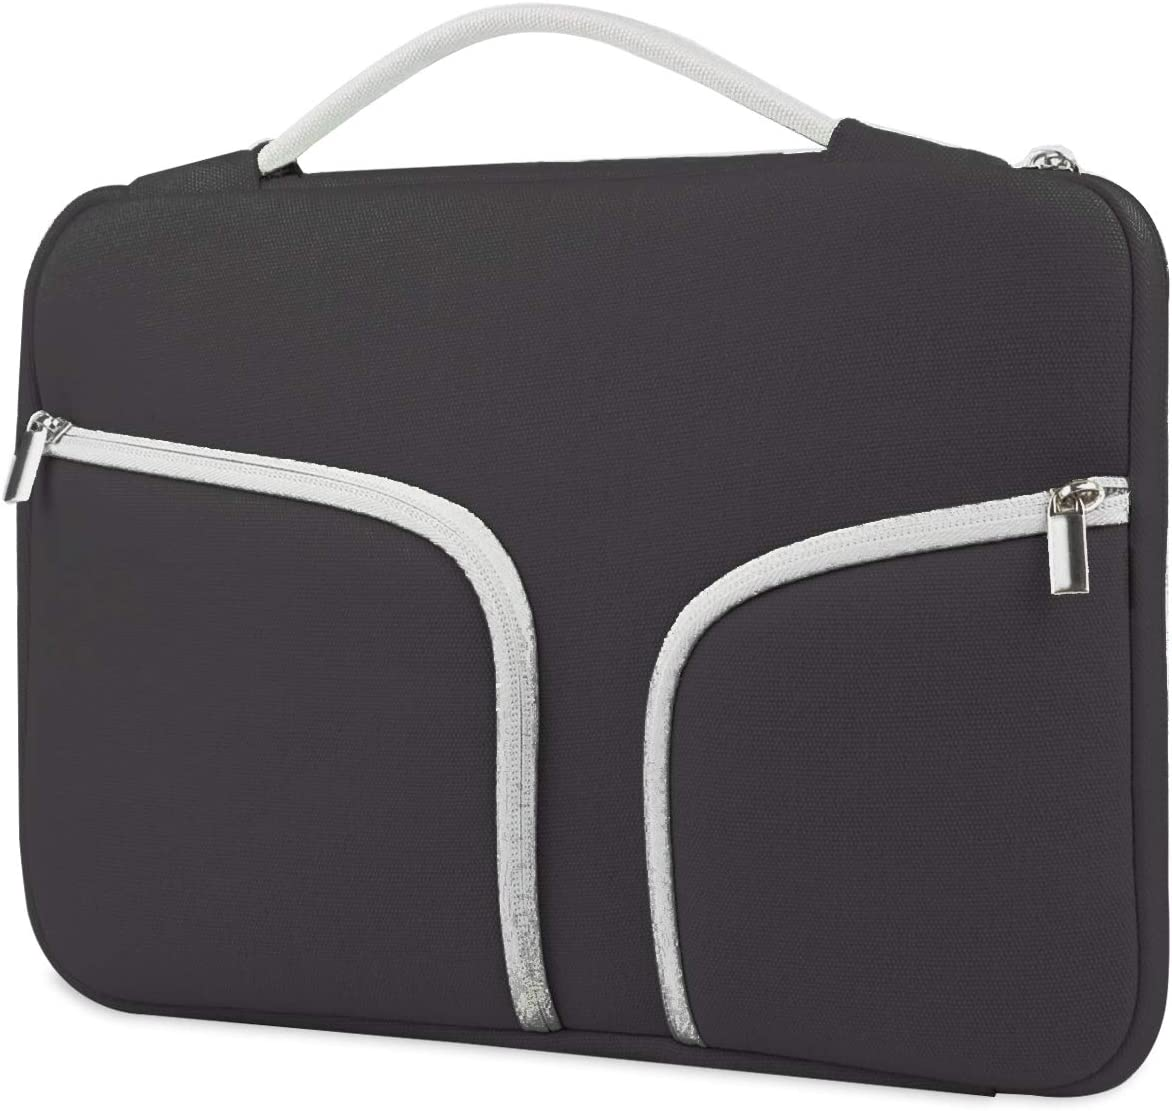 HESTECH Chromebook Case,11.6-12.3 inch Canvas Laptop Sleeve Bag Handle Front Pockets Compatible with Acer ASUS Dell HP Lenovo Thinkpad Yoga Samsung Toshiba MacBook air Microsoft Surface, Black